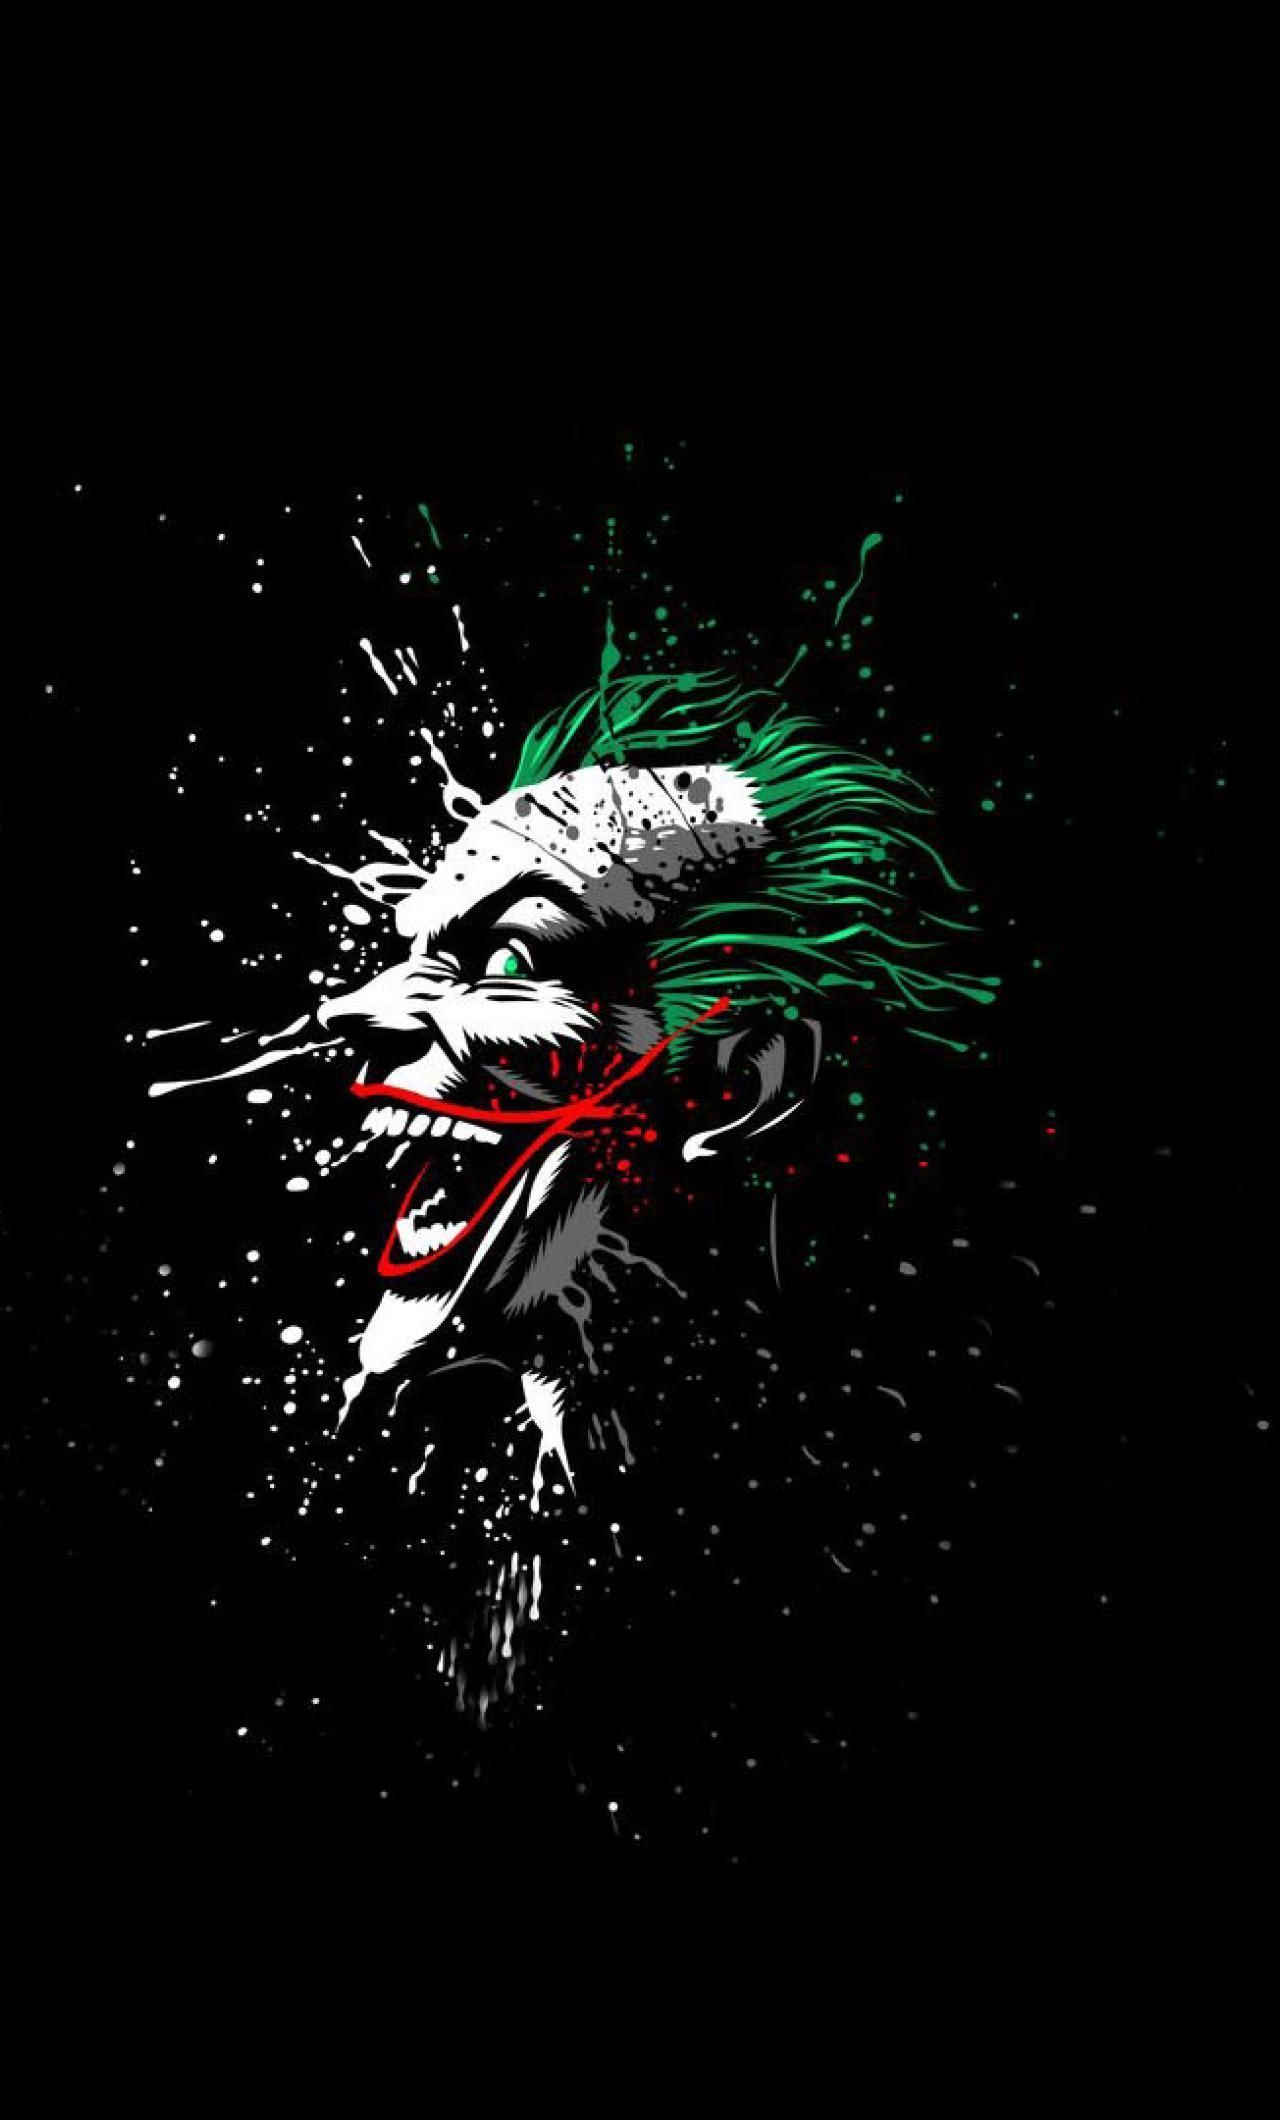 Joker Hd Wallpapers For Iphone 6 32 Image Collections Of Wallpapers Collections Image Iphone Joker Artwork Joker Hd Wallpaper Joker Iphone Wallpaper